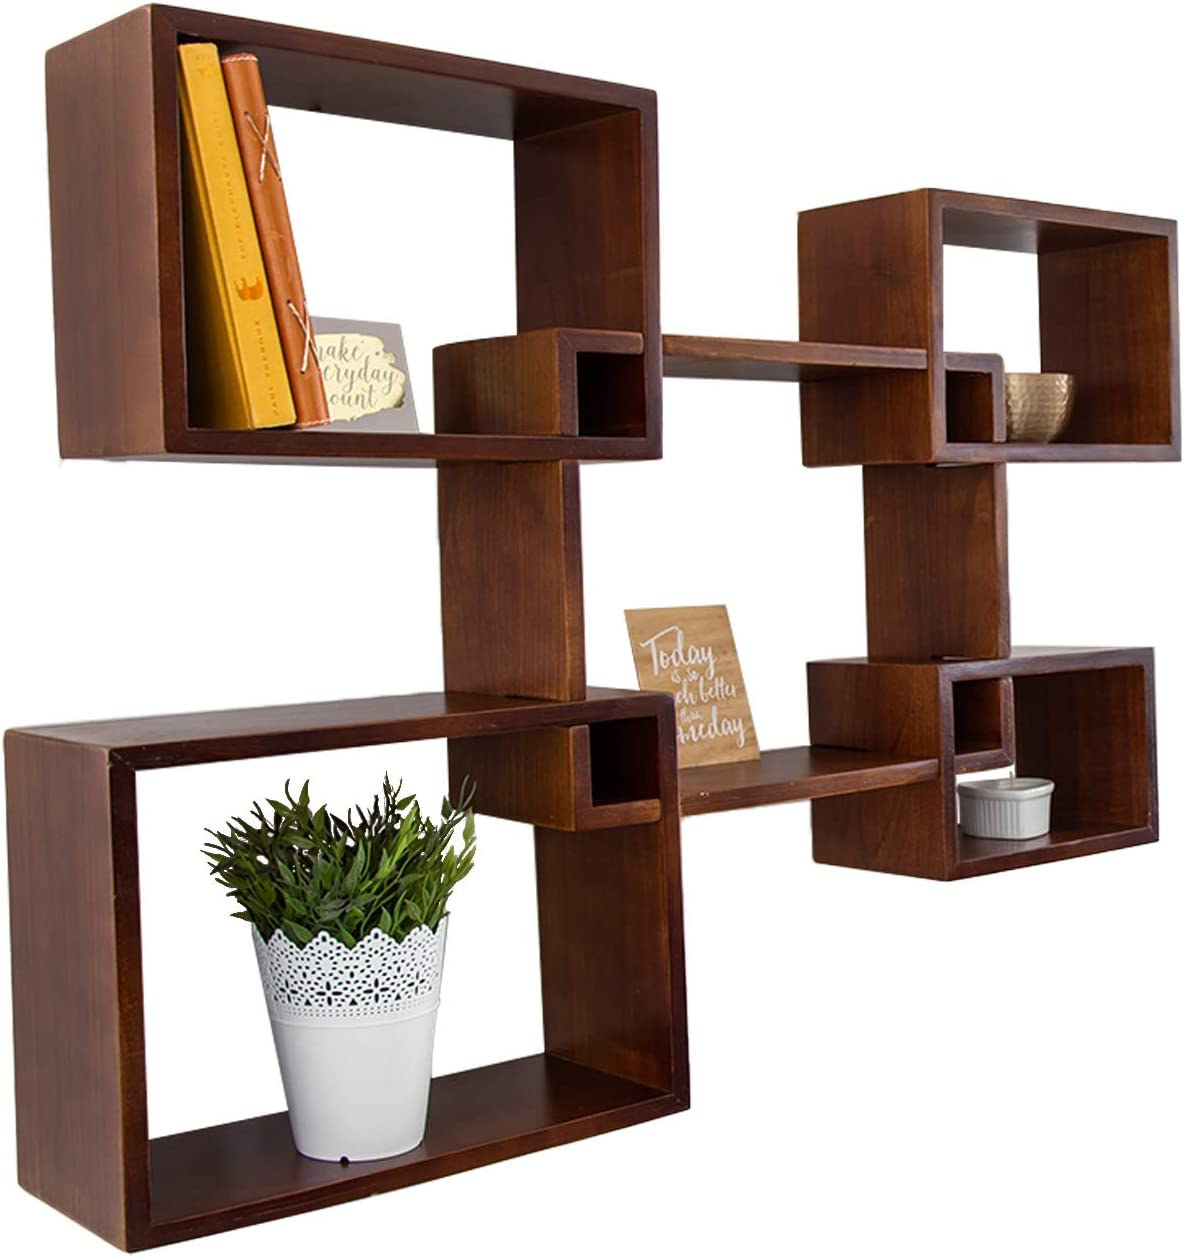 Modern Wall Mounted Square Shaped Floating Shelves – Set of 5 Square Shelves for Bathroom, Bedroom, Living Room & More - Screws and Anchors Included – Rustic Wall Décor Display for Home - Brown